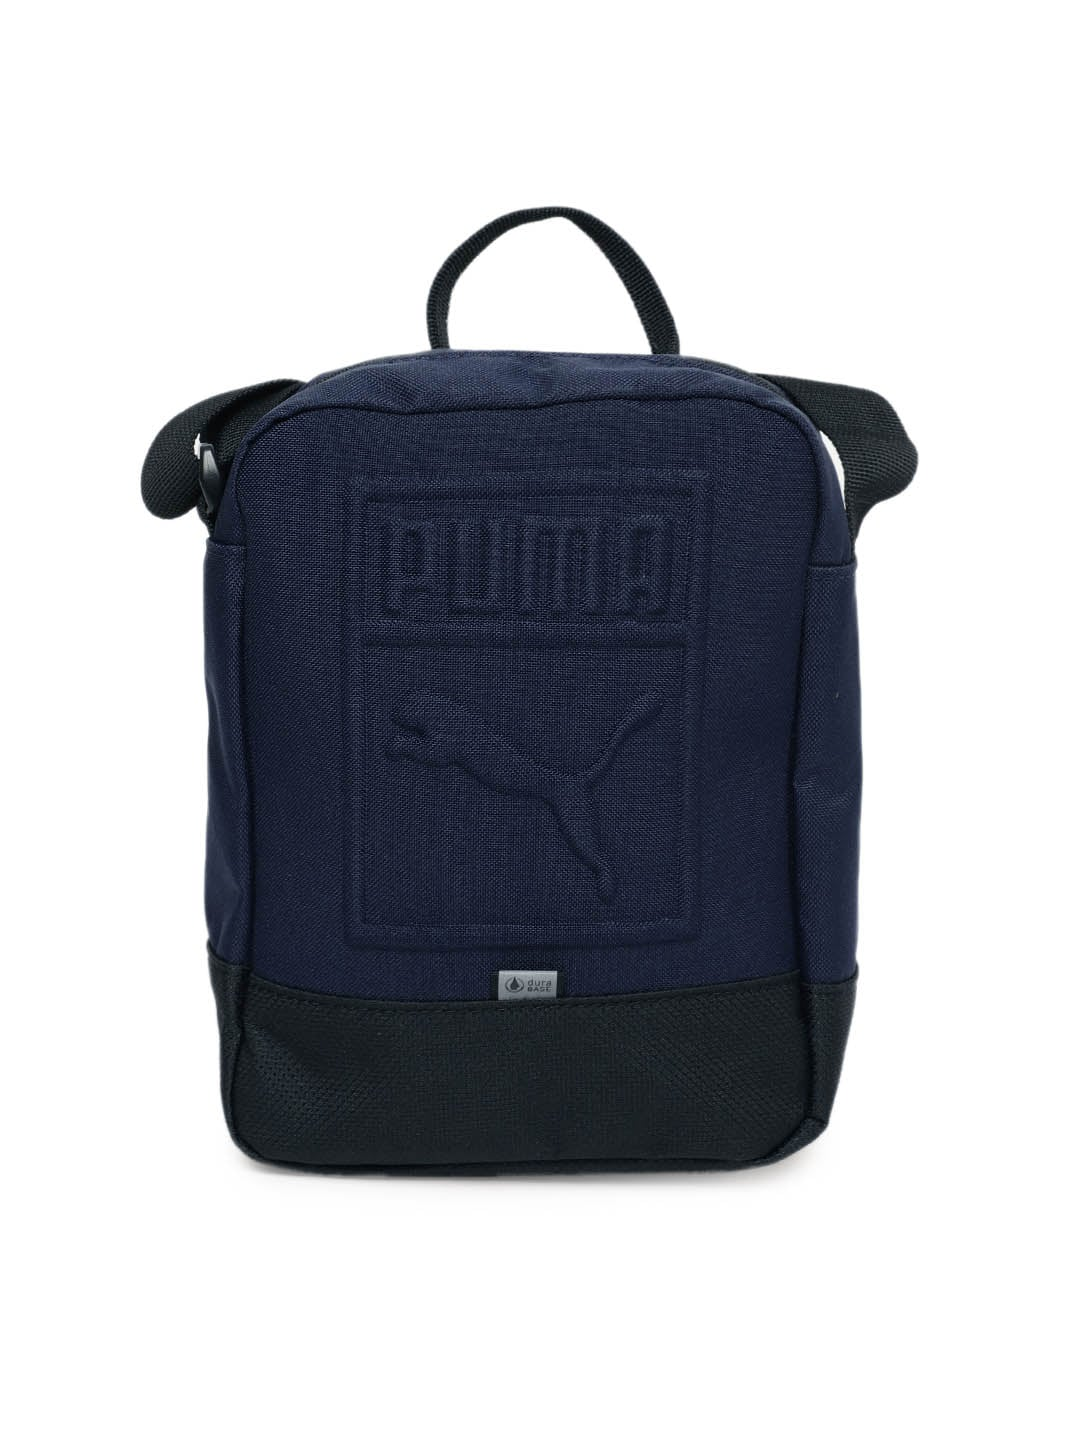 6b5119eb41bb Puma Polyester Bags - Buy Puma Polyester Bags online in India